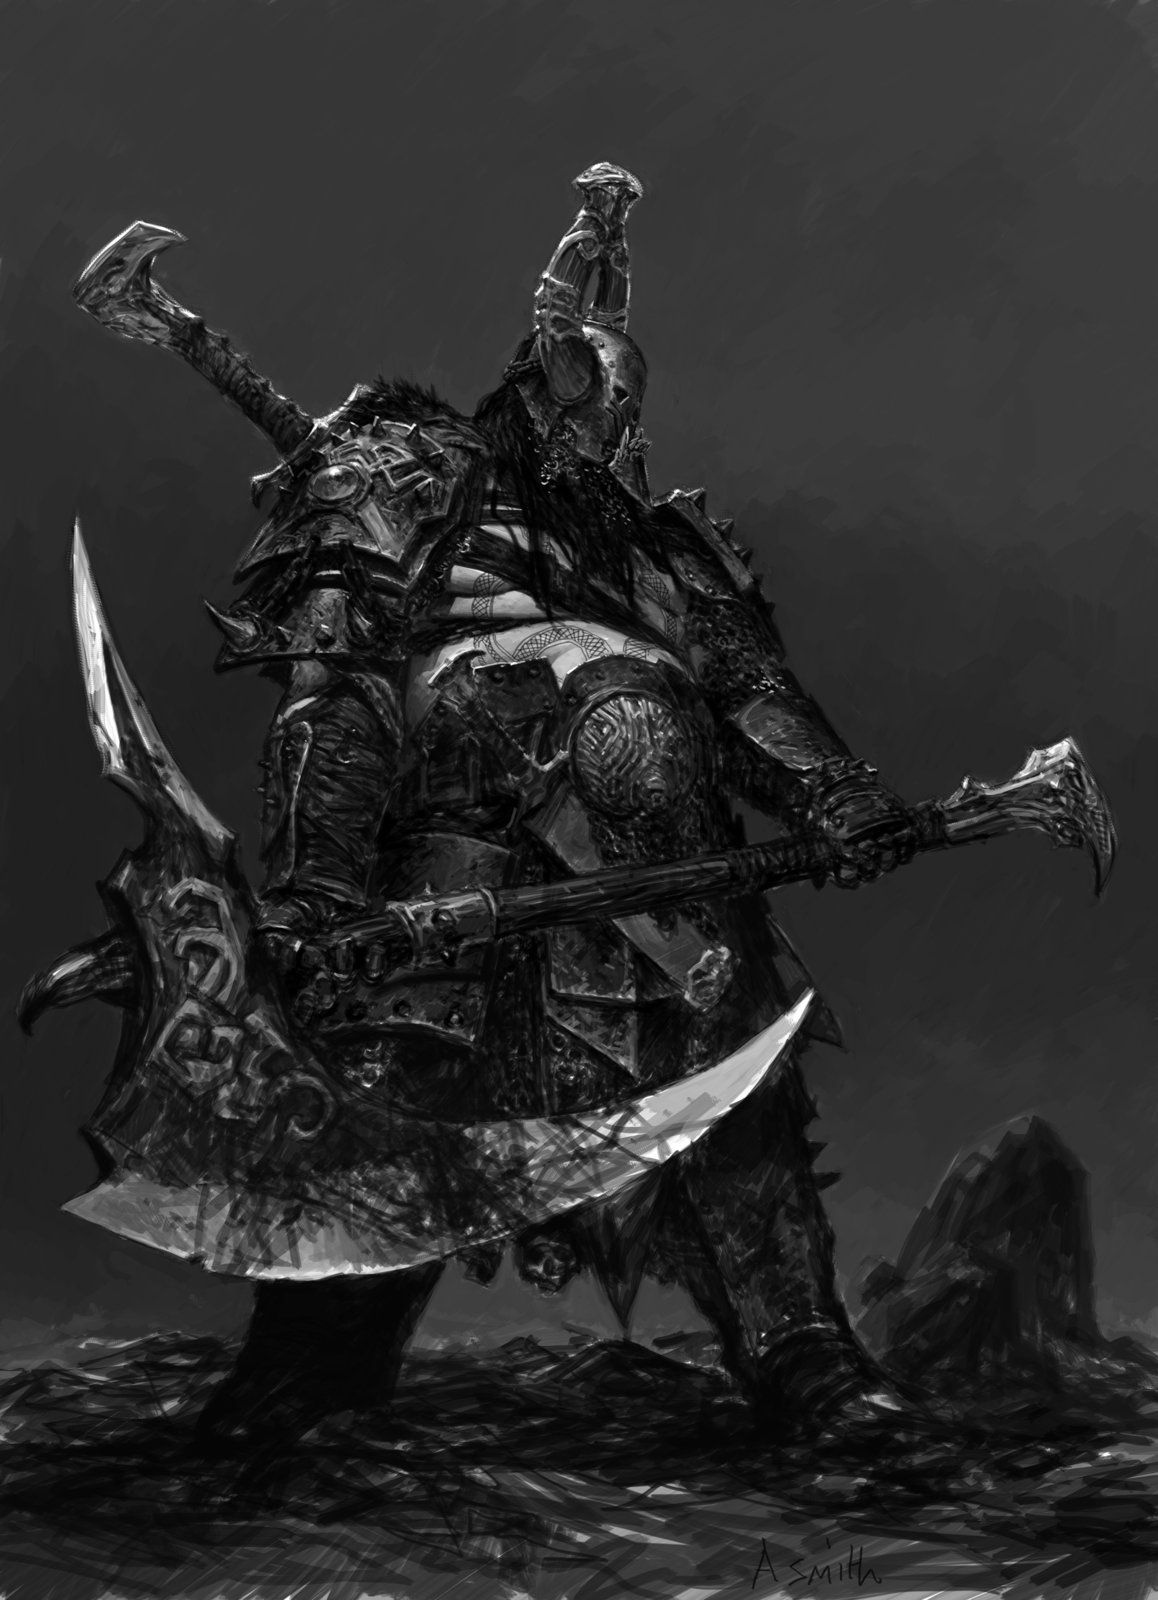 HATE lord10, adrian smith on ArtStation at http://www.artstation.com/artwork/hate-lord10